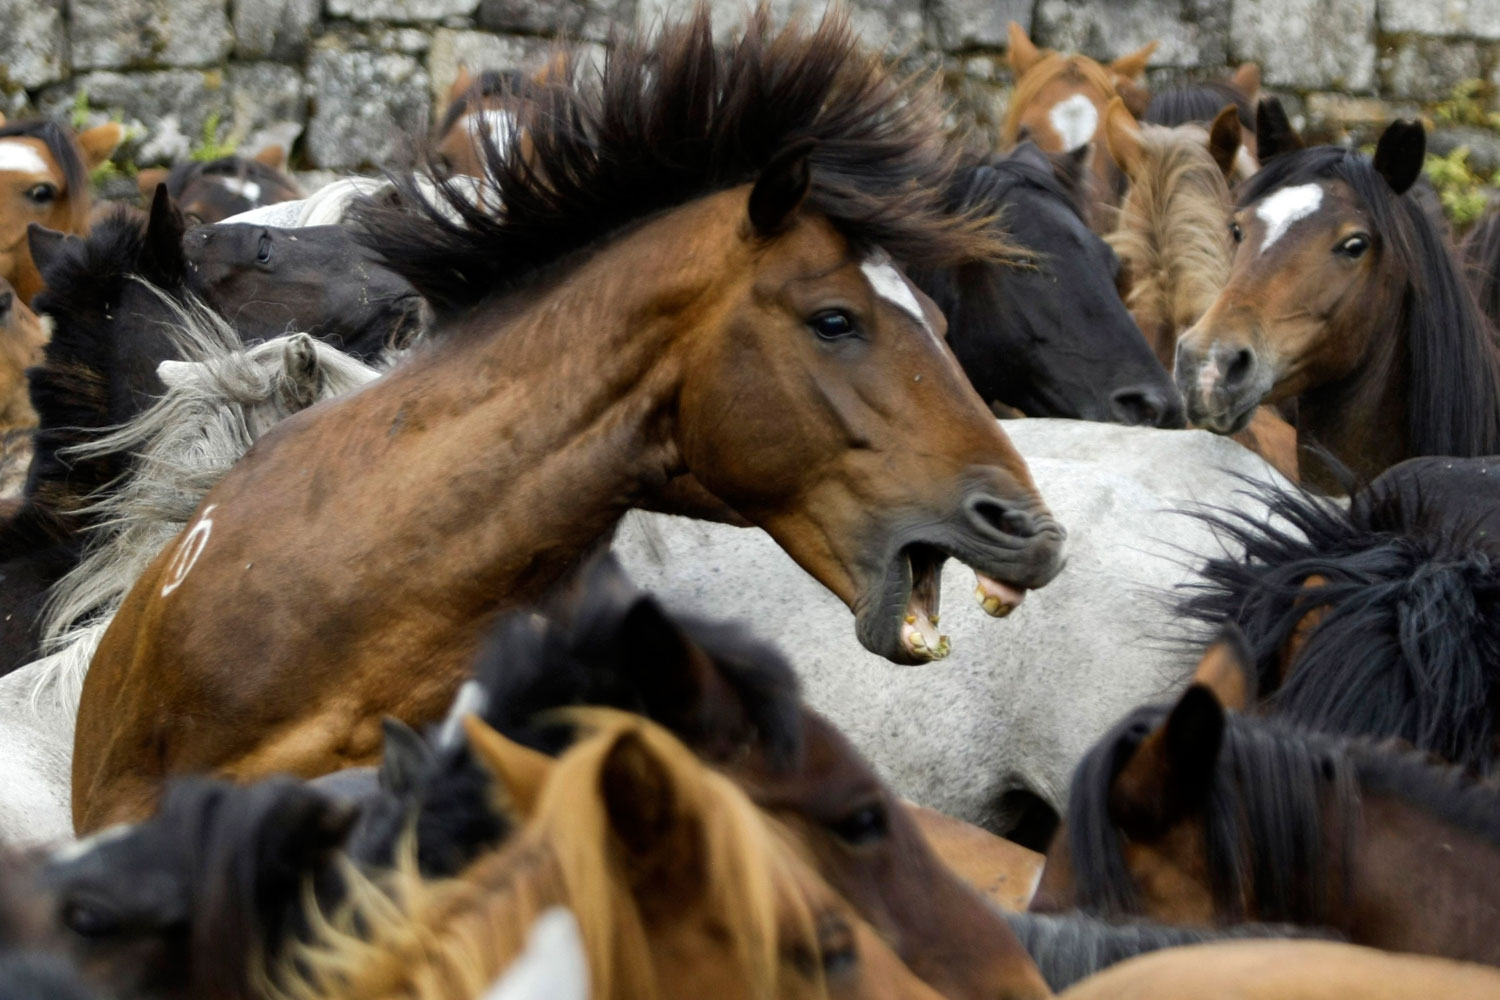 July 2, 2011. Wild horses are seen gathered during the  Rapa Das Bestas  event in the village of Sabucedo, Spain. On the first weekend of the month of July, hundreds of wild horses are rounded up, trimmed and groomed in different villages in Spain's northwestern region of Galicia.